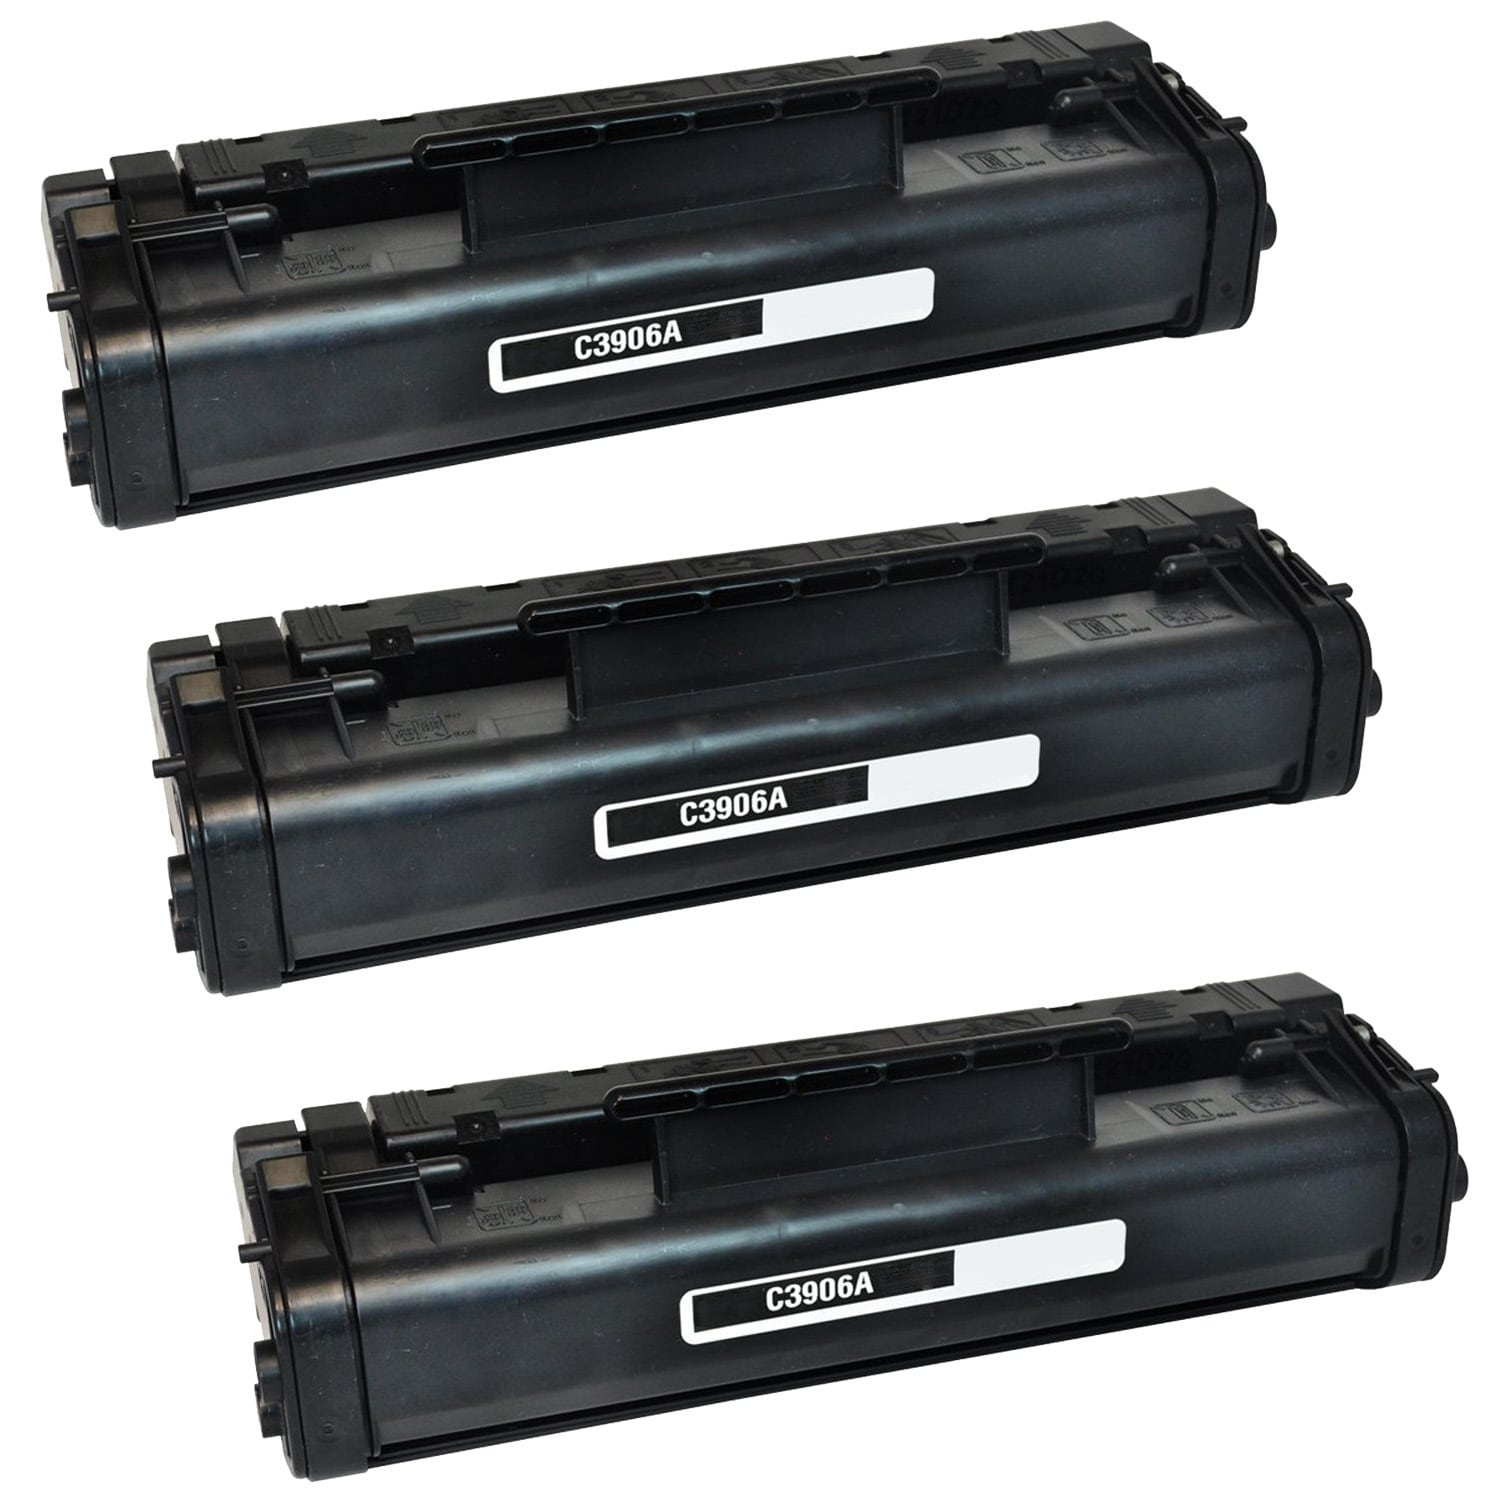 N 3PK Compatible C3906A Toner Cartridge For HP LaserJet 5...